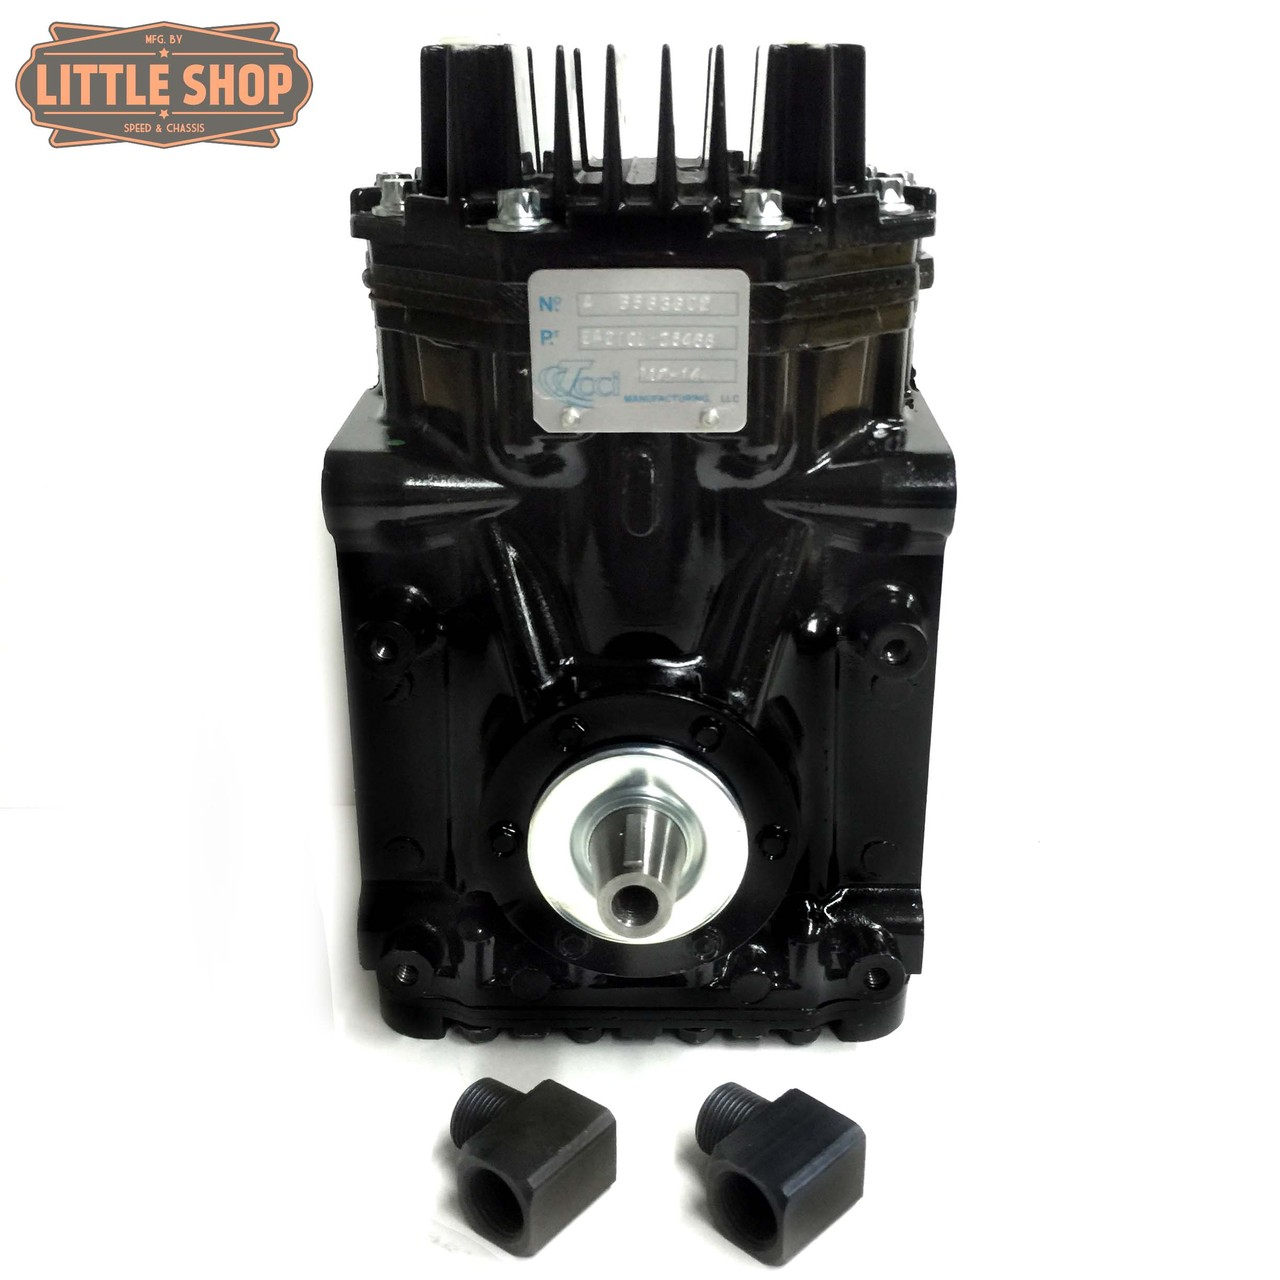 LSMFG-LS-SLM 99'-13' GM 4.8, 5.3, 6.0, 6.2 LS Engine Driven Compressor Kit (same kit as EDC kit but with upgraded SLM compressor)